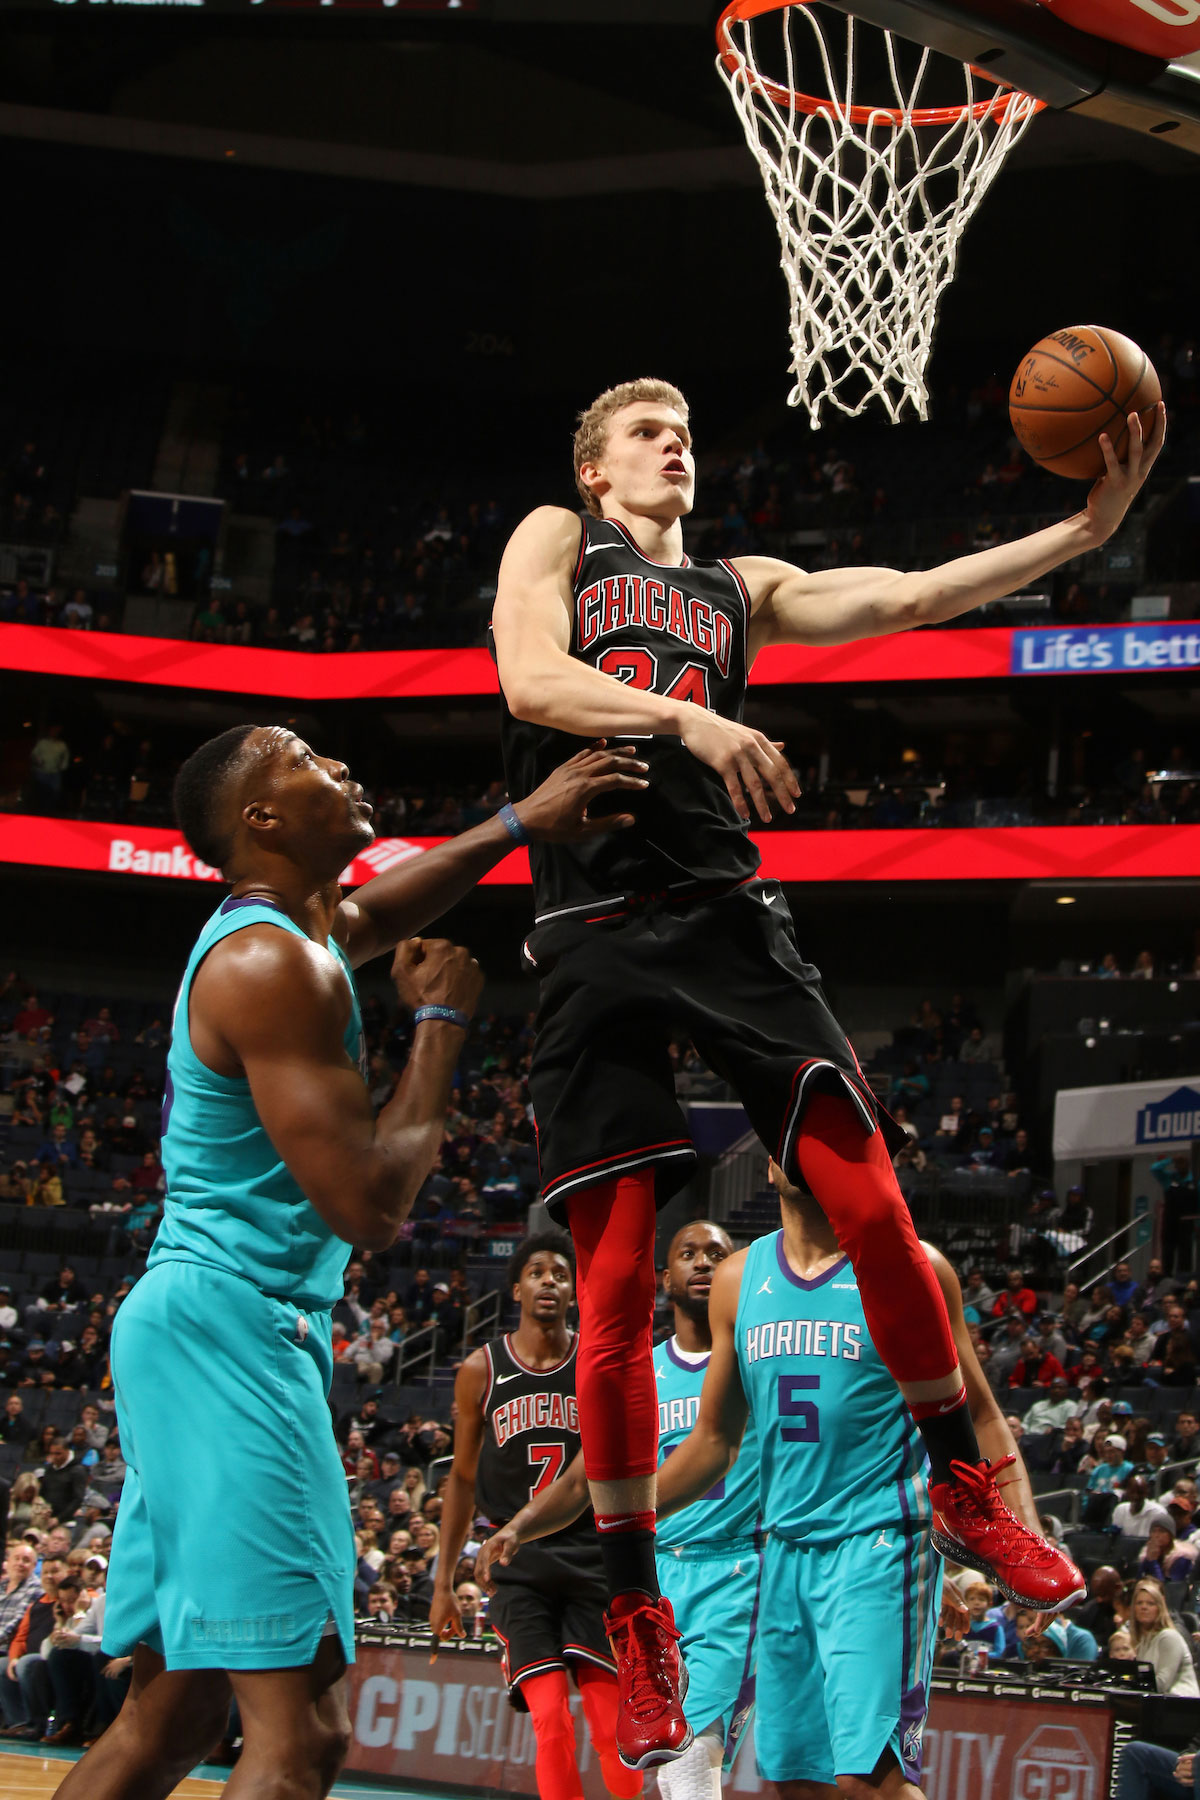 Lauri Markkanen #24 of the Chicago Bulls shoots a lay up against the Charlotte Hornets on December 8, 2017 at Spectrum Center in Charlotte, North Carolina.